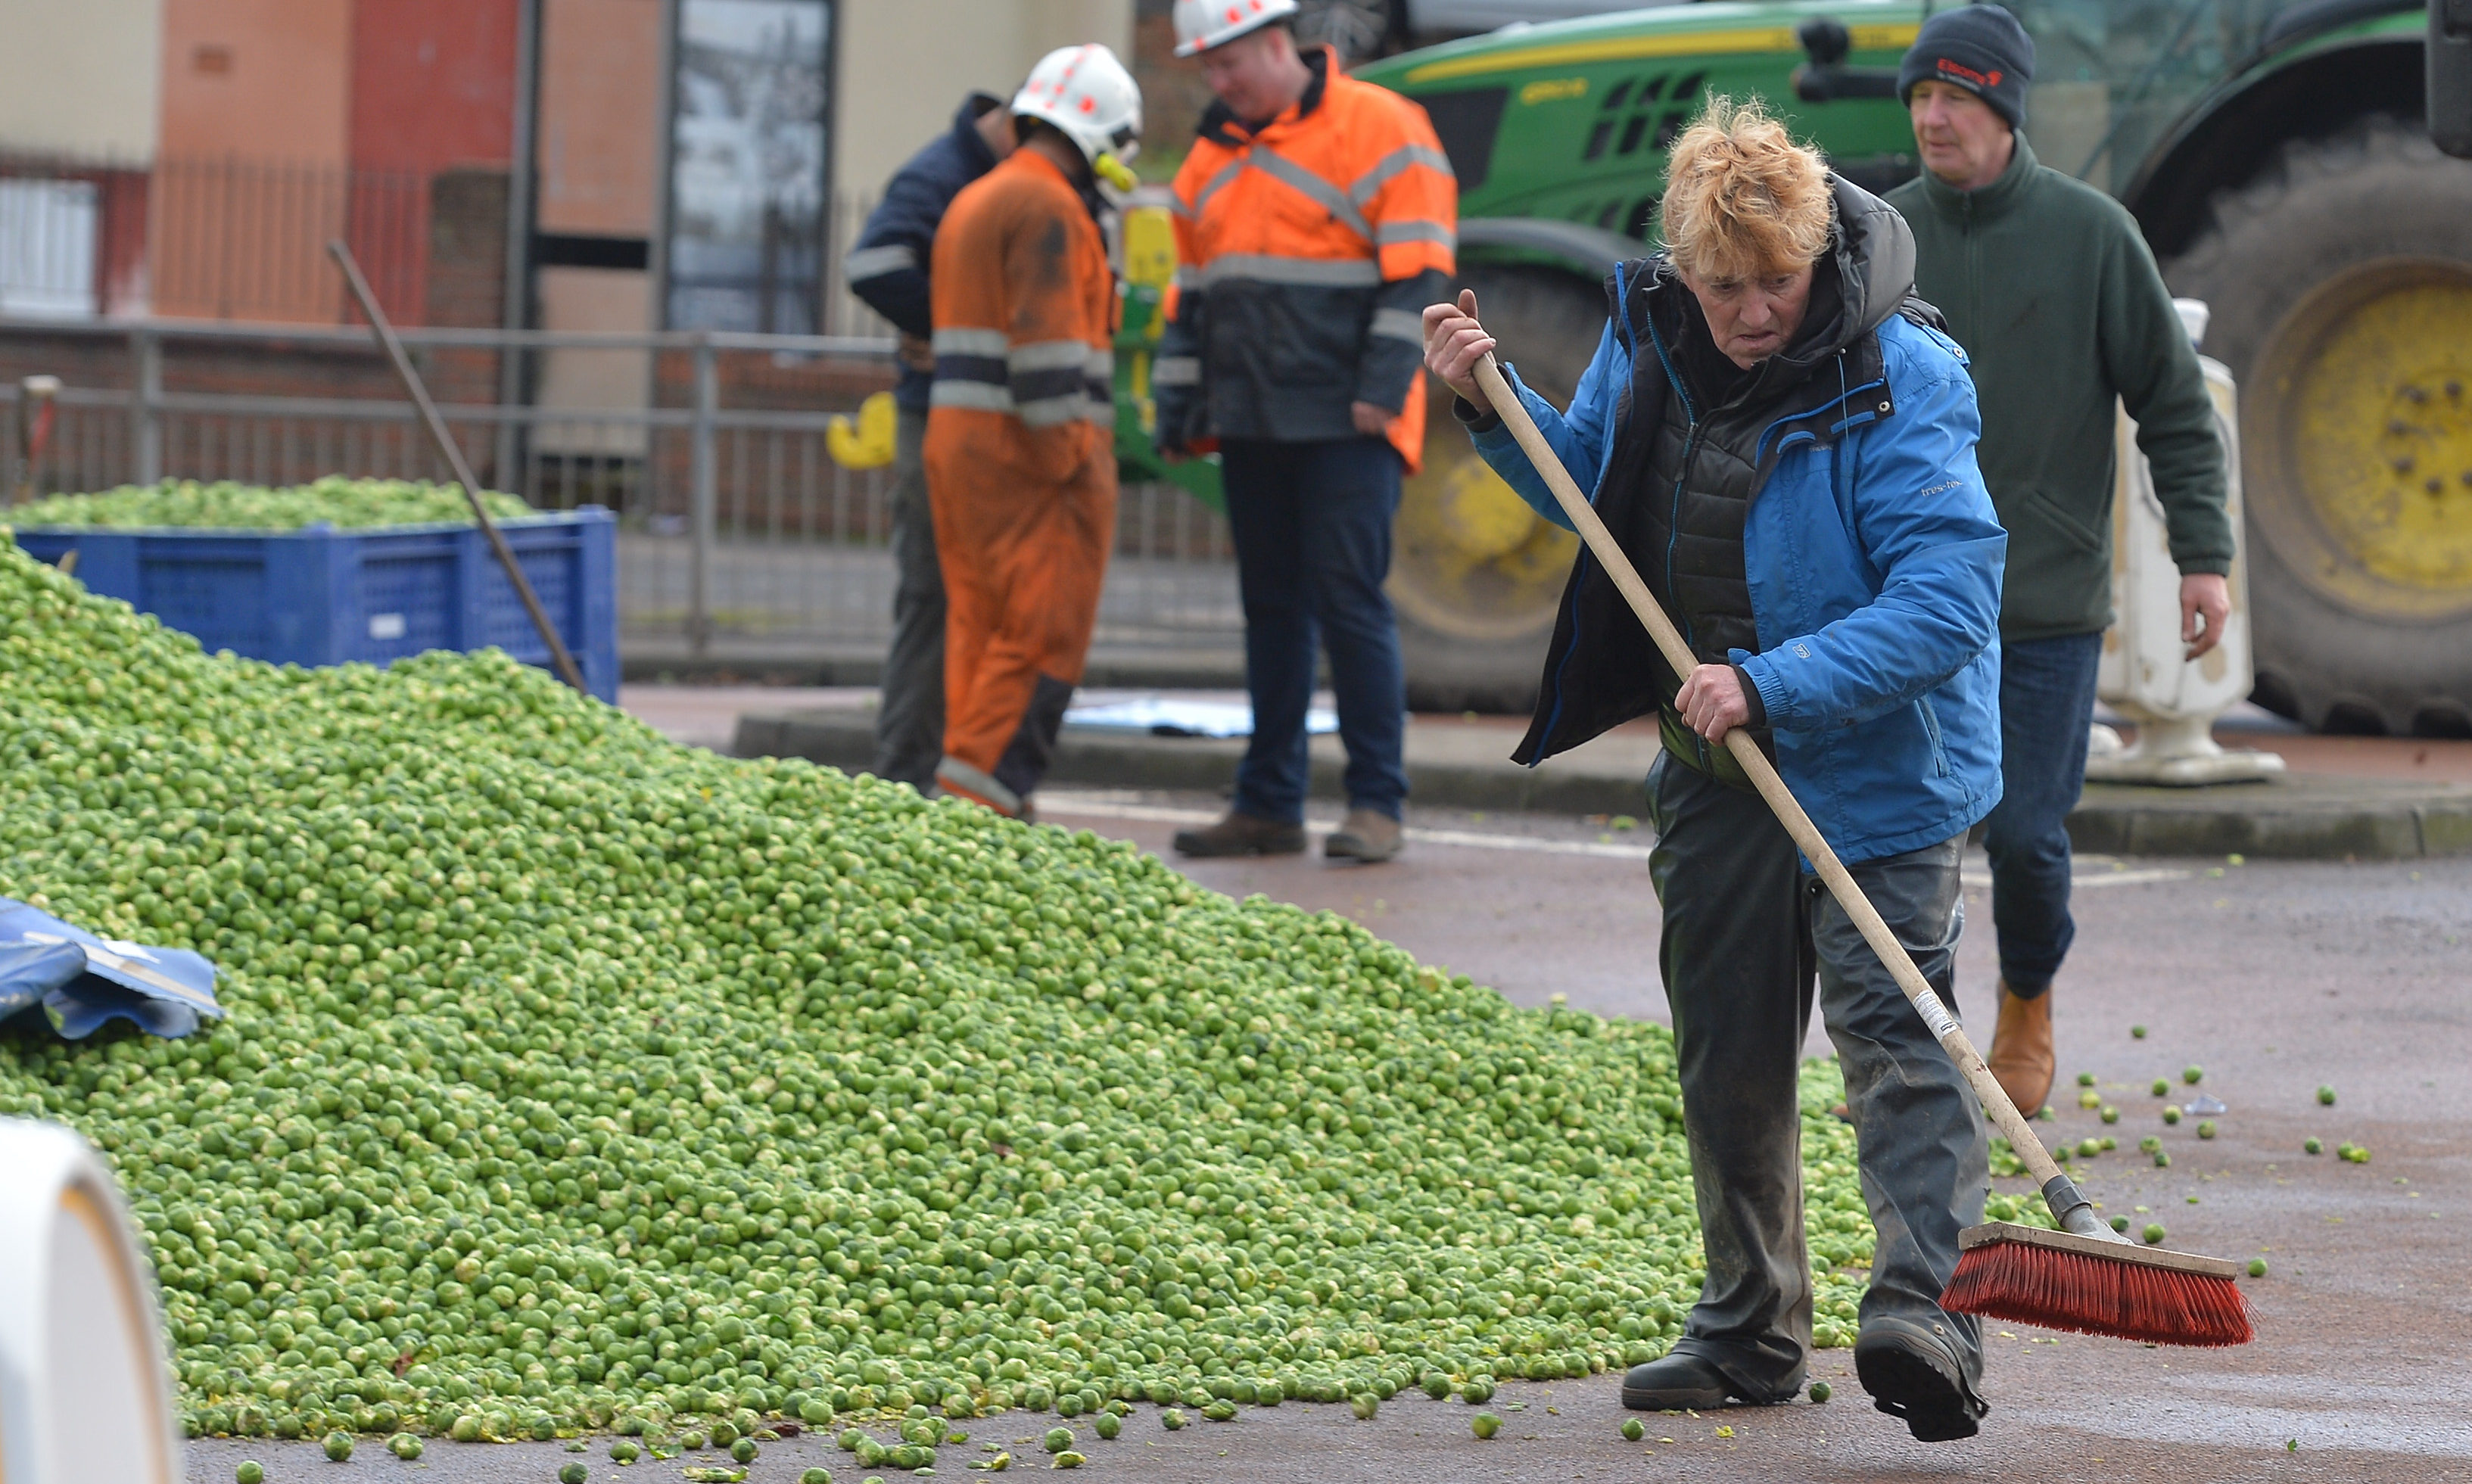 A lorry shed hundreds of thousands of Brussel sprouts in Fife crash.